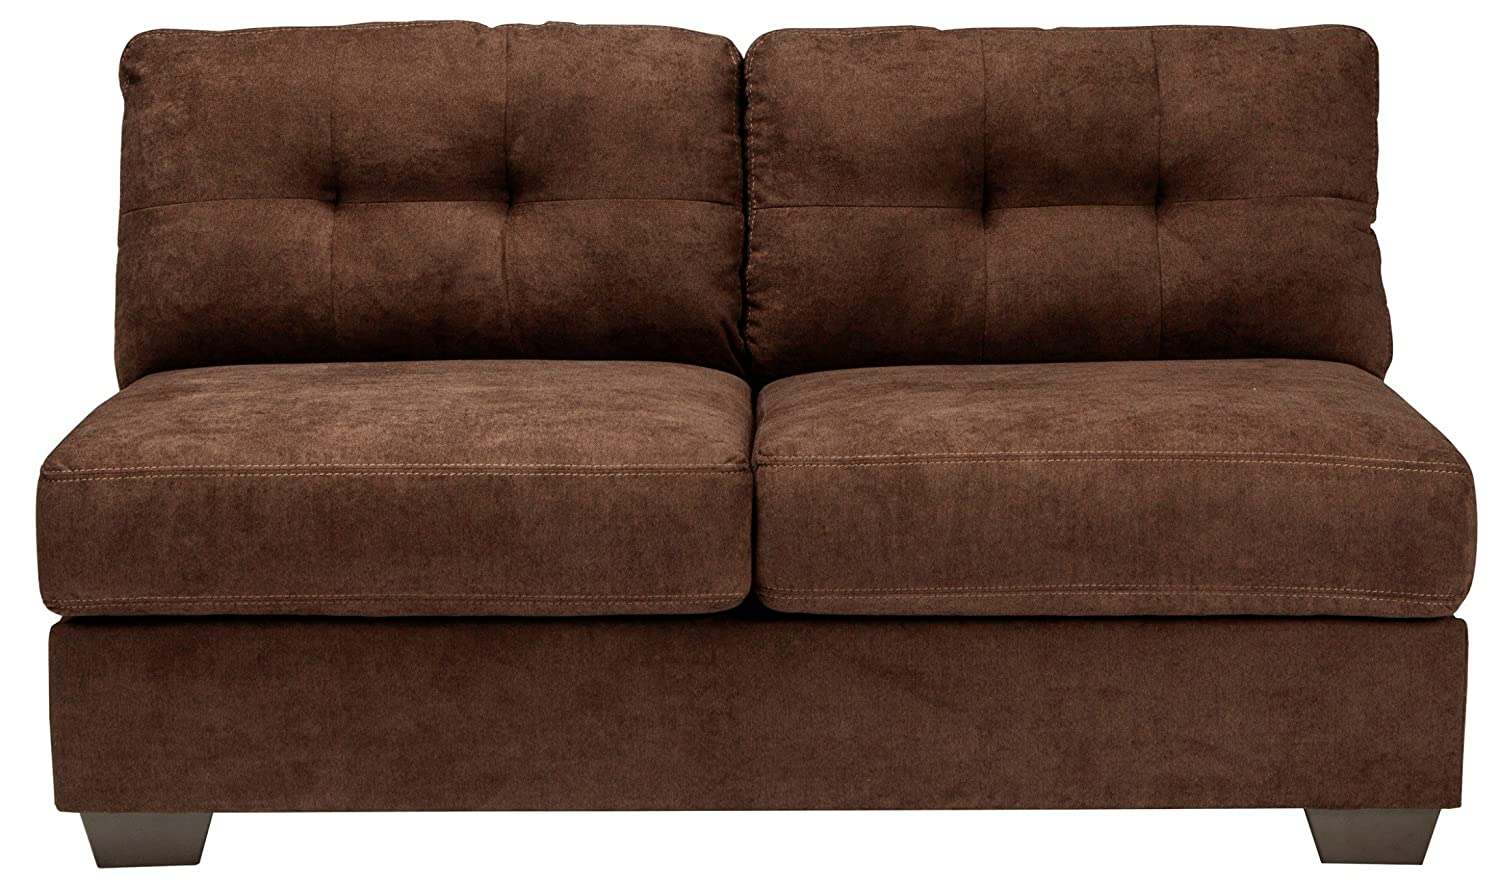 Ashley Delta City Armless Loveseat in Chocolate